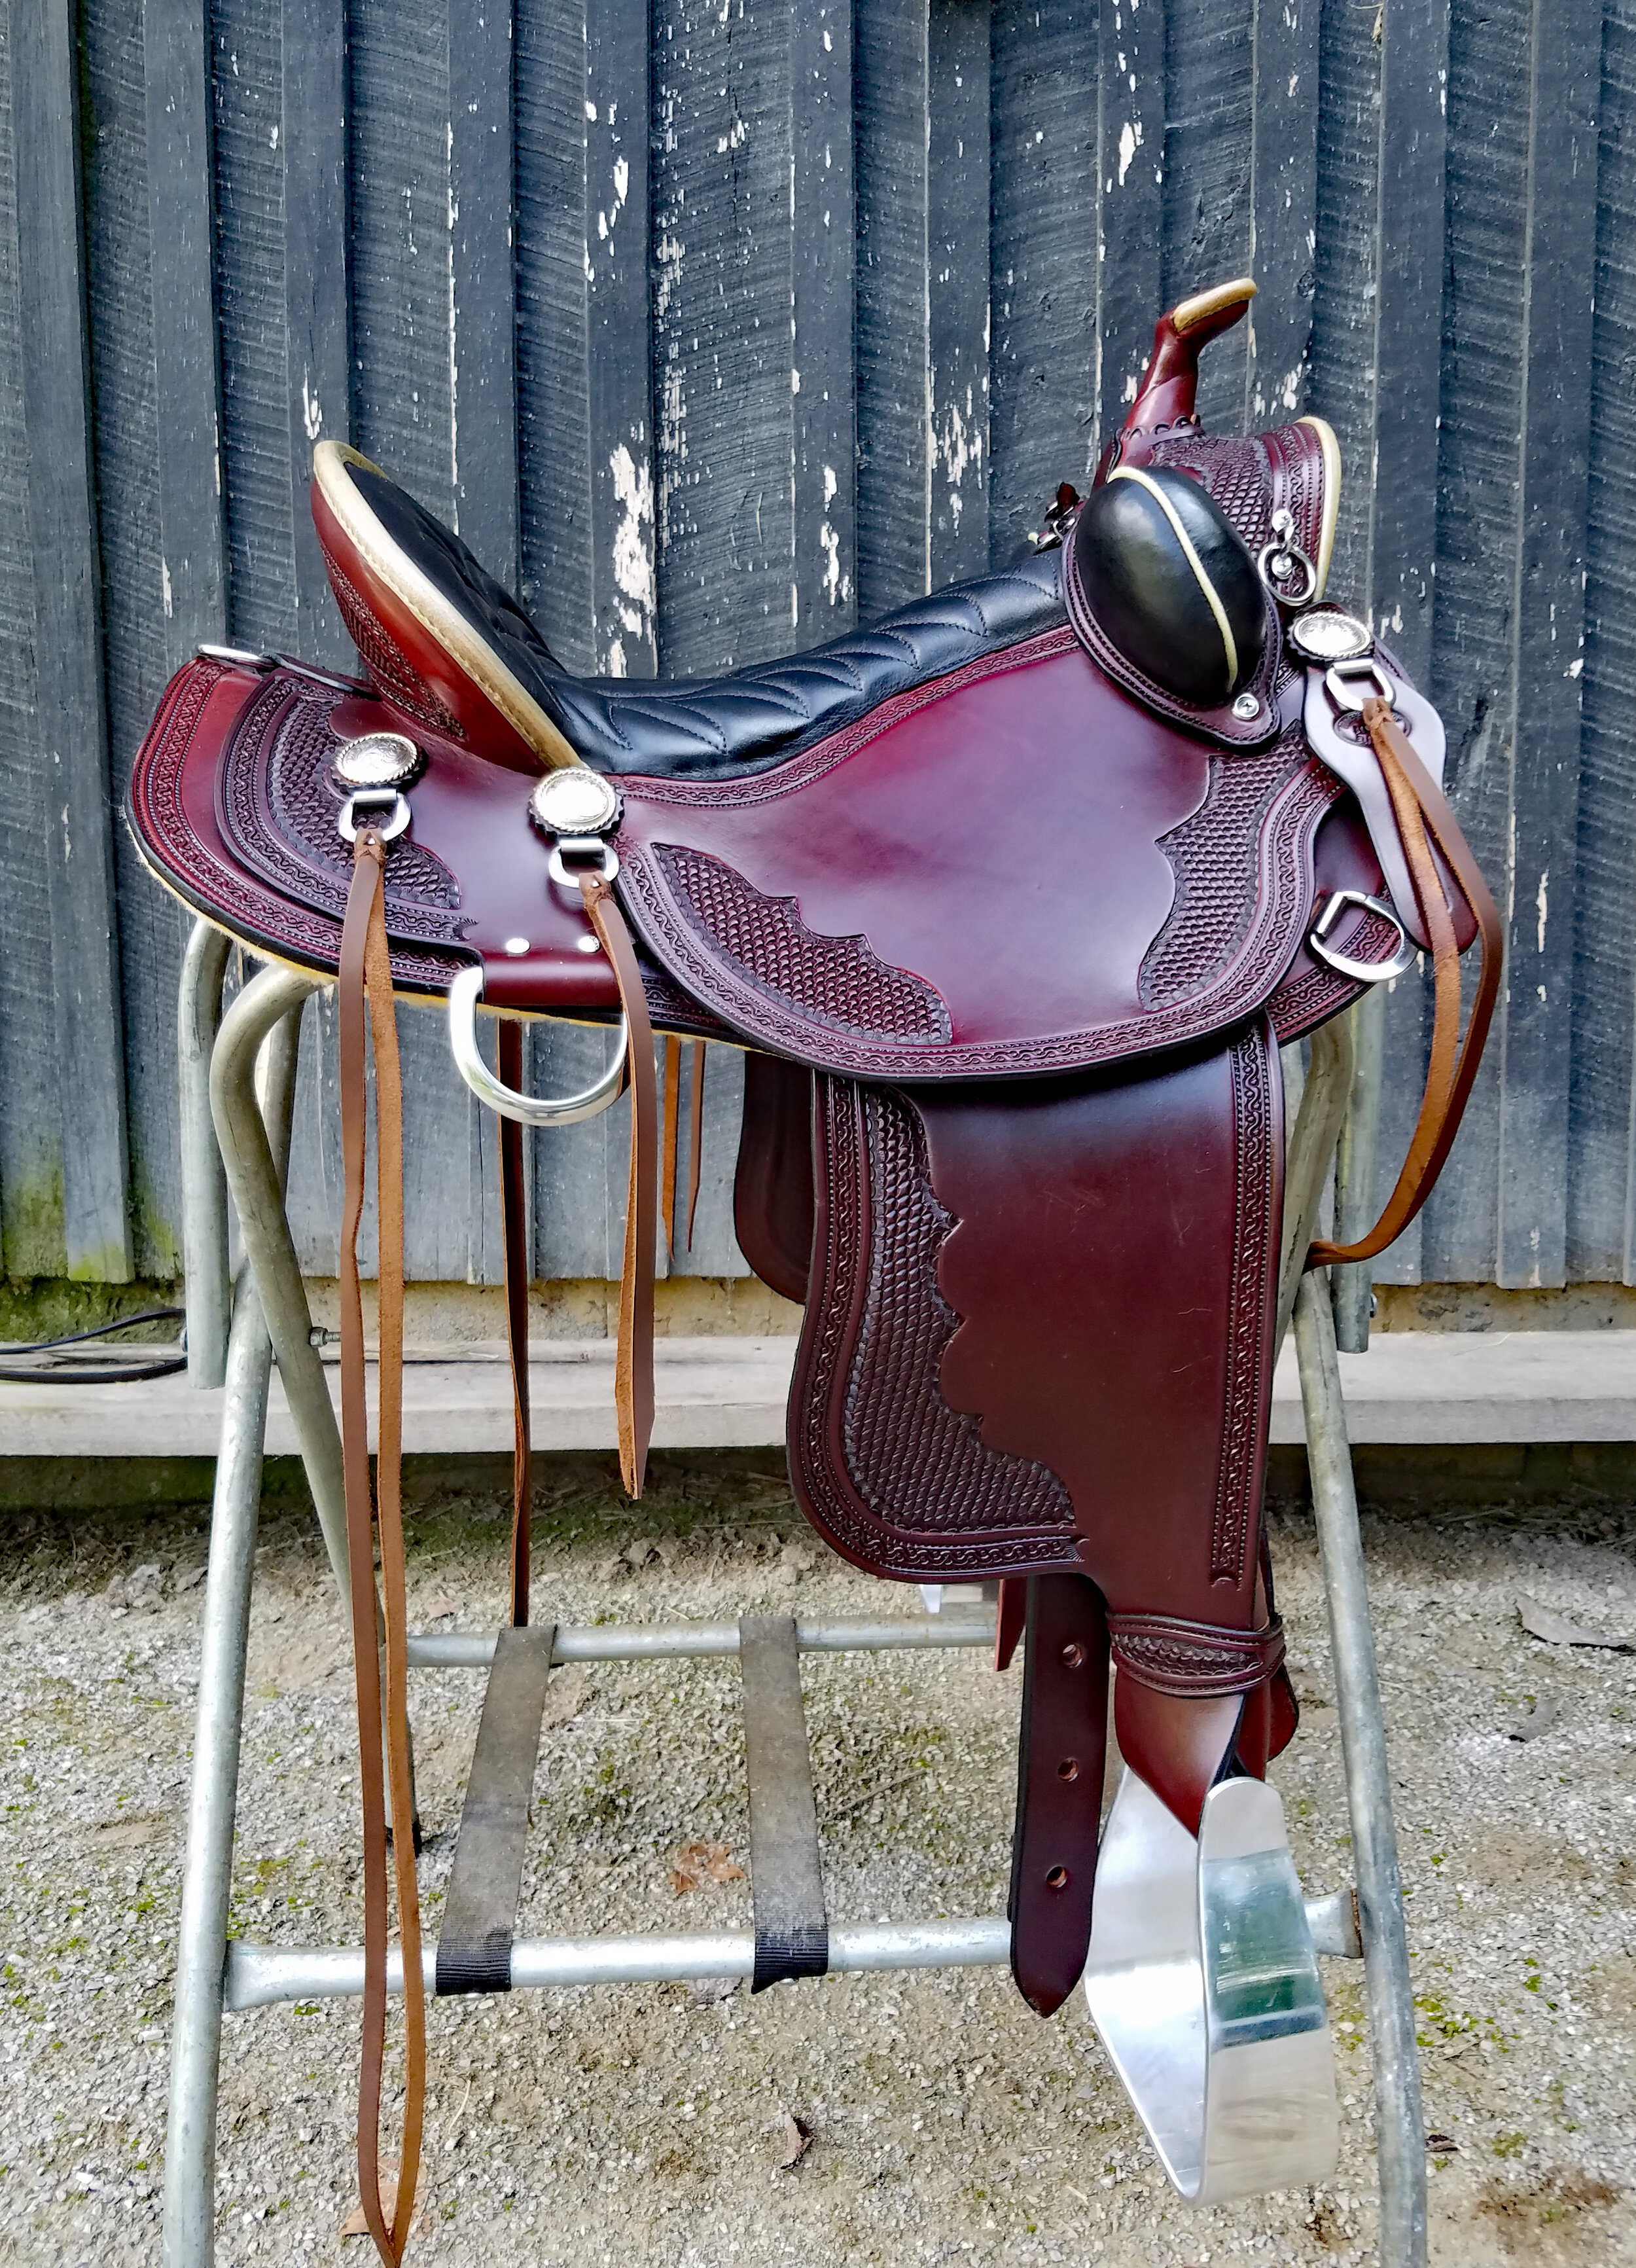 "16"" Custom Old Timer by Eli Miller - This beauty shows the double oil chestnut finish perfectly accented by the natural rawhide pencil rolls in front and back. Tilted aluminum stirrups help the knee stress as well as the twisted leathers. Bucking rolls help secure your position. Suspended seat for the comfort of the rider. Batie tree for the comfort of the horse."